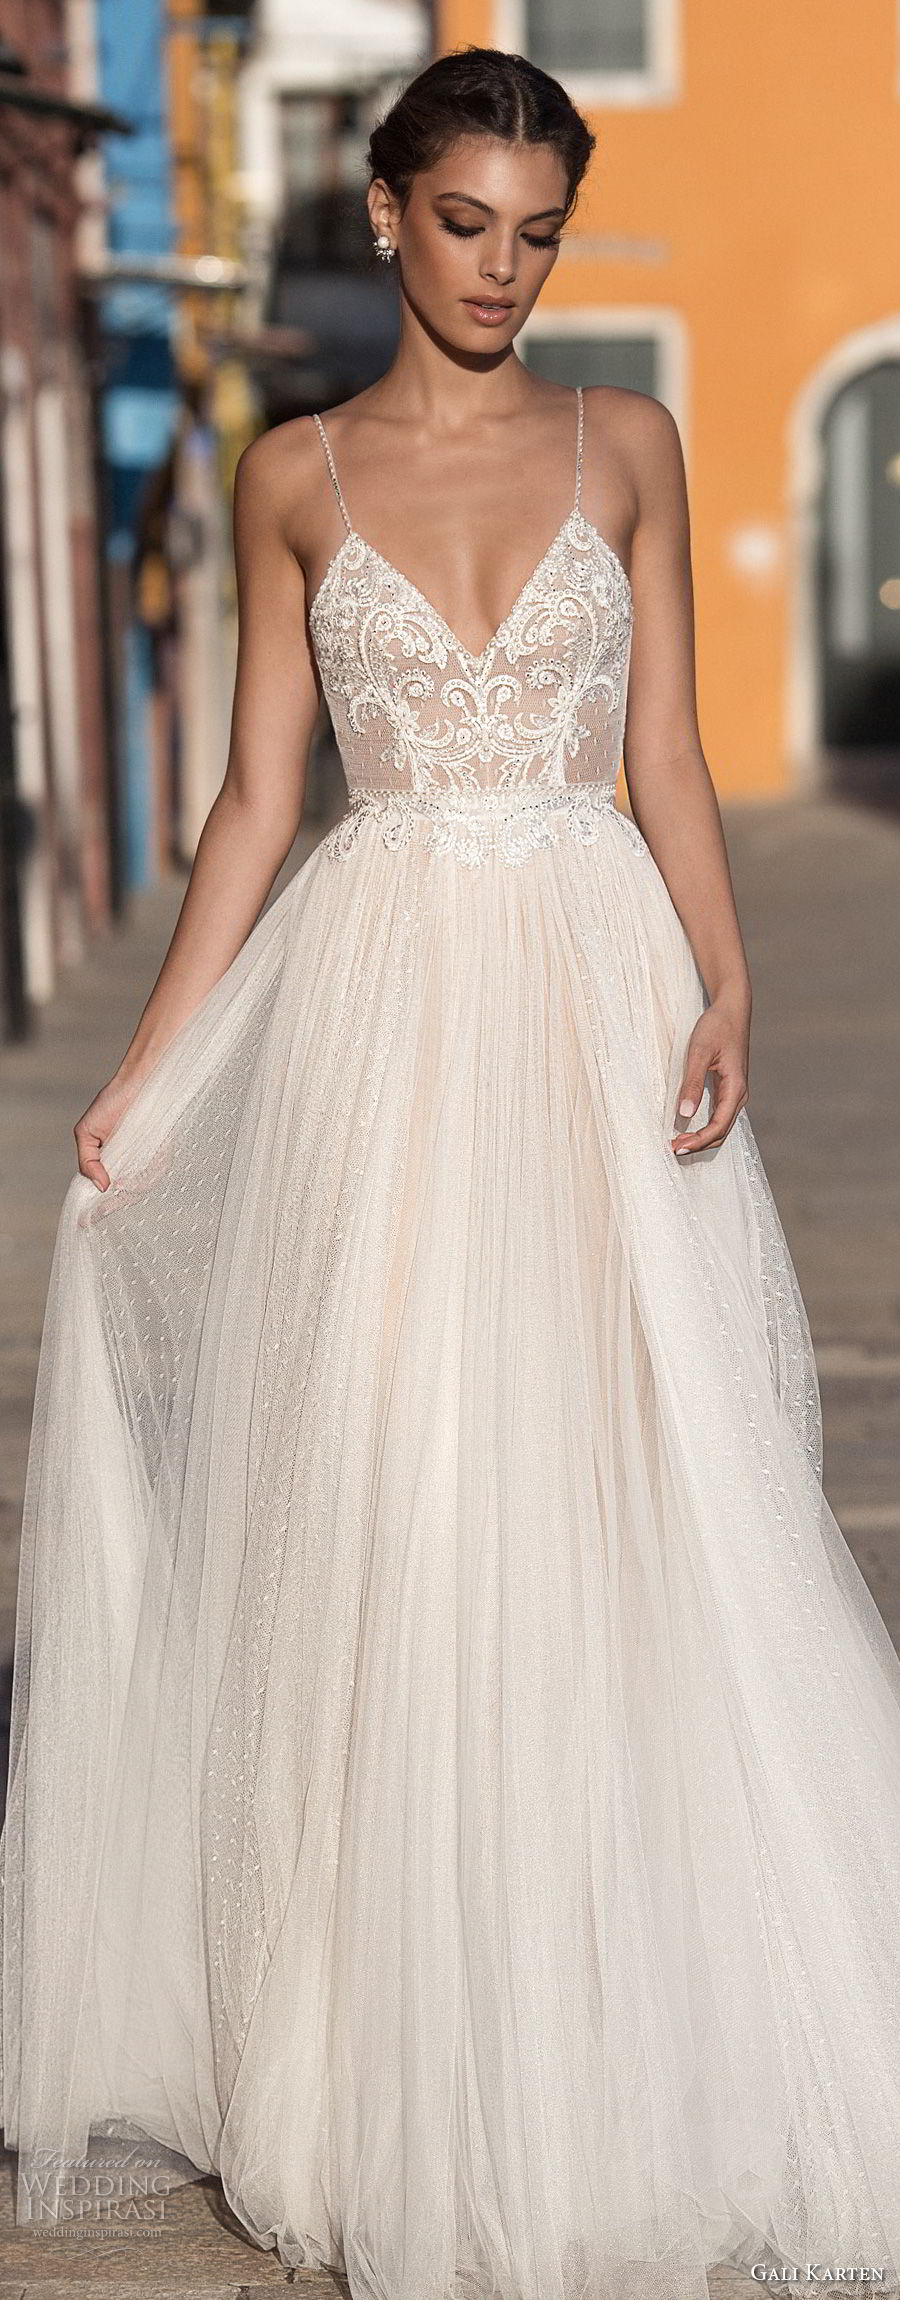 gali karten 2018 bridal spaghetti strap deep sweetheart neckline heavily embellished bodice soft a line wedding dress open scoop back sweep train (9) lv